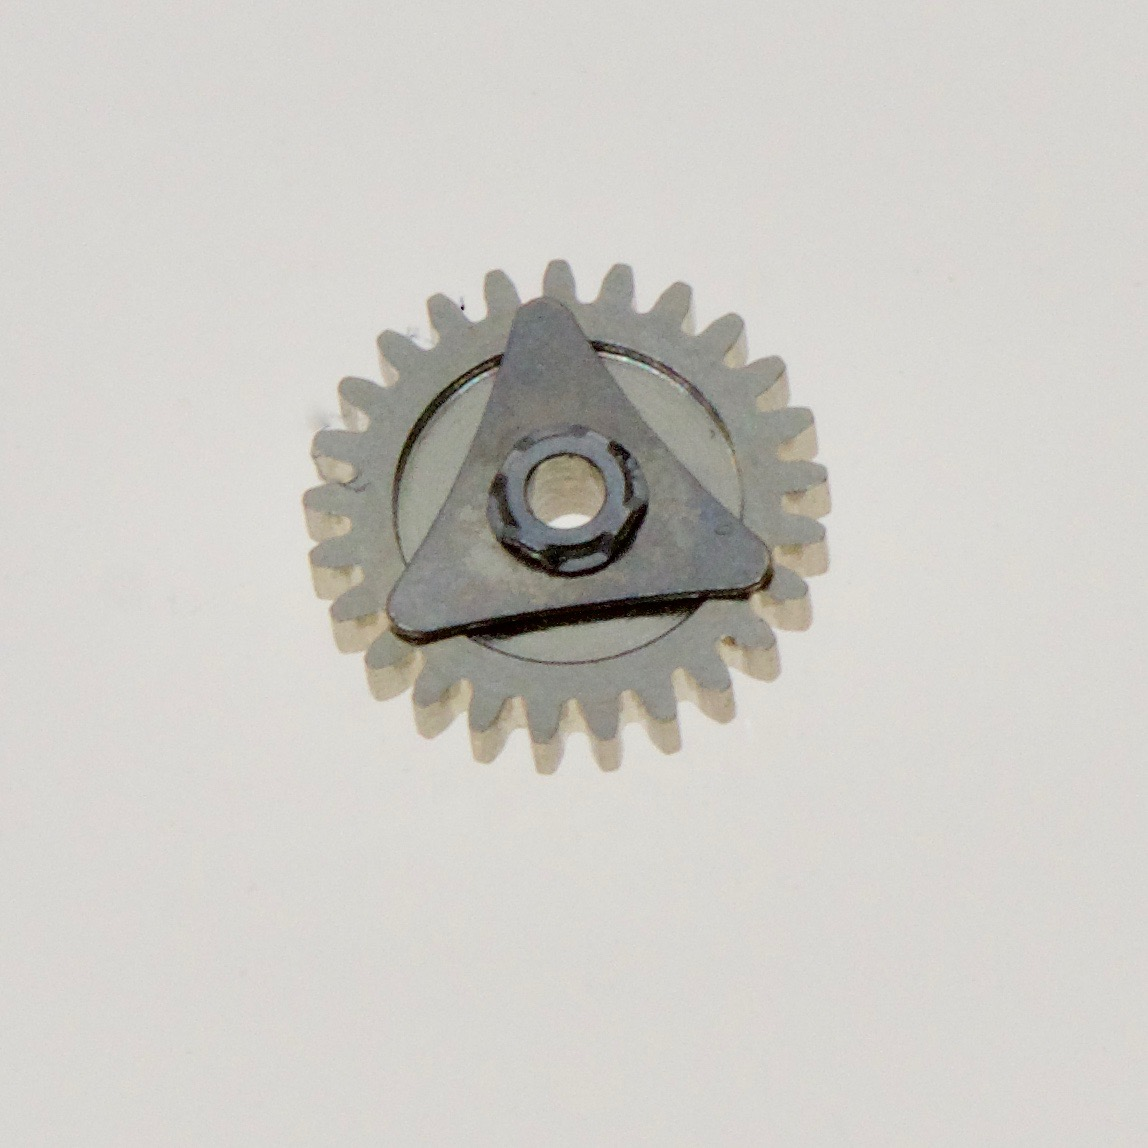 Friction clutch for hand setting